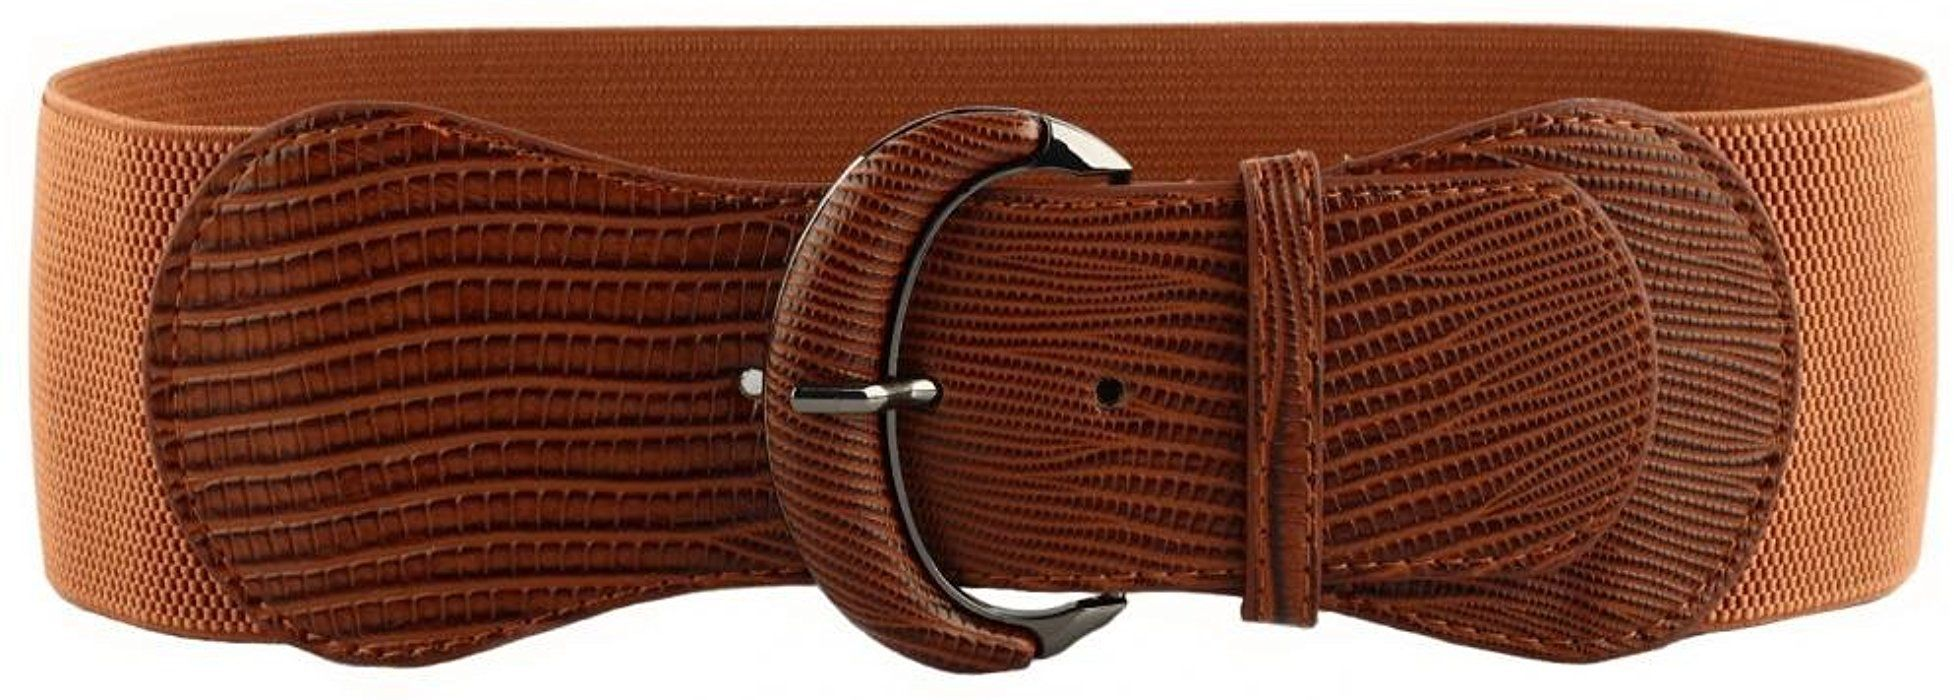 46c14d357e731 VOCHIC PU Leather Elastic Wide Belt for Women Stretch Thick Waist Belt for  Dress, Brown, One size(26